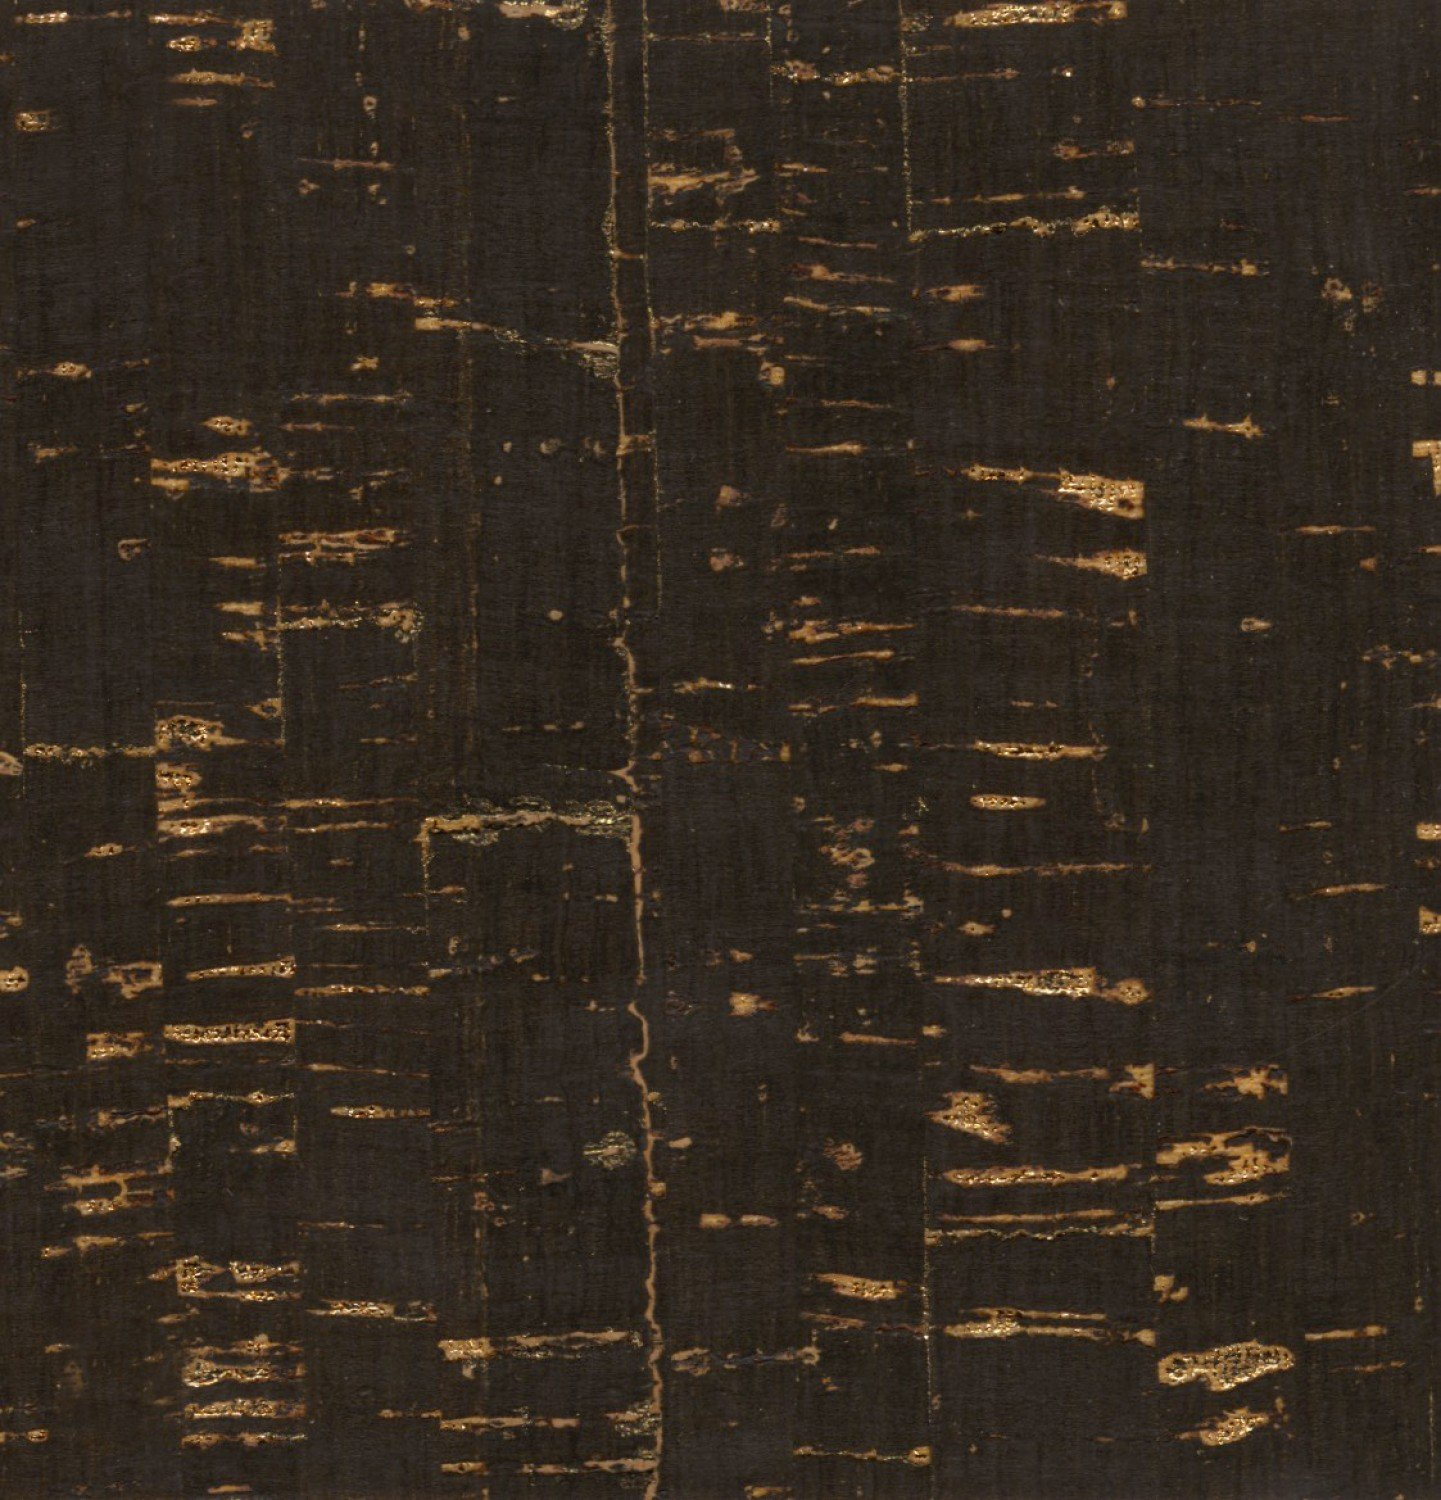 Cork Fabric Black with Gold Metallic